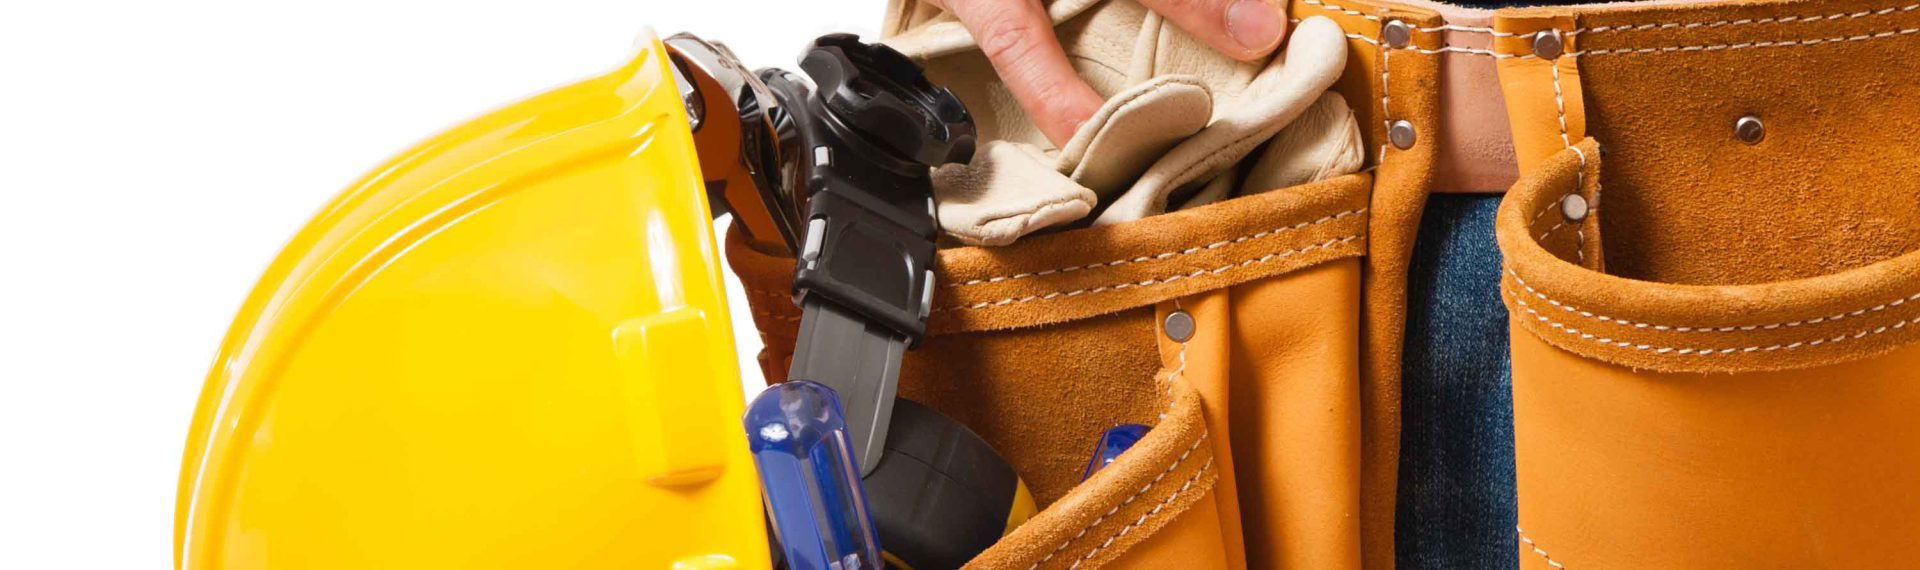 What requirements are there for getting Public Liability Insurance?